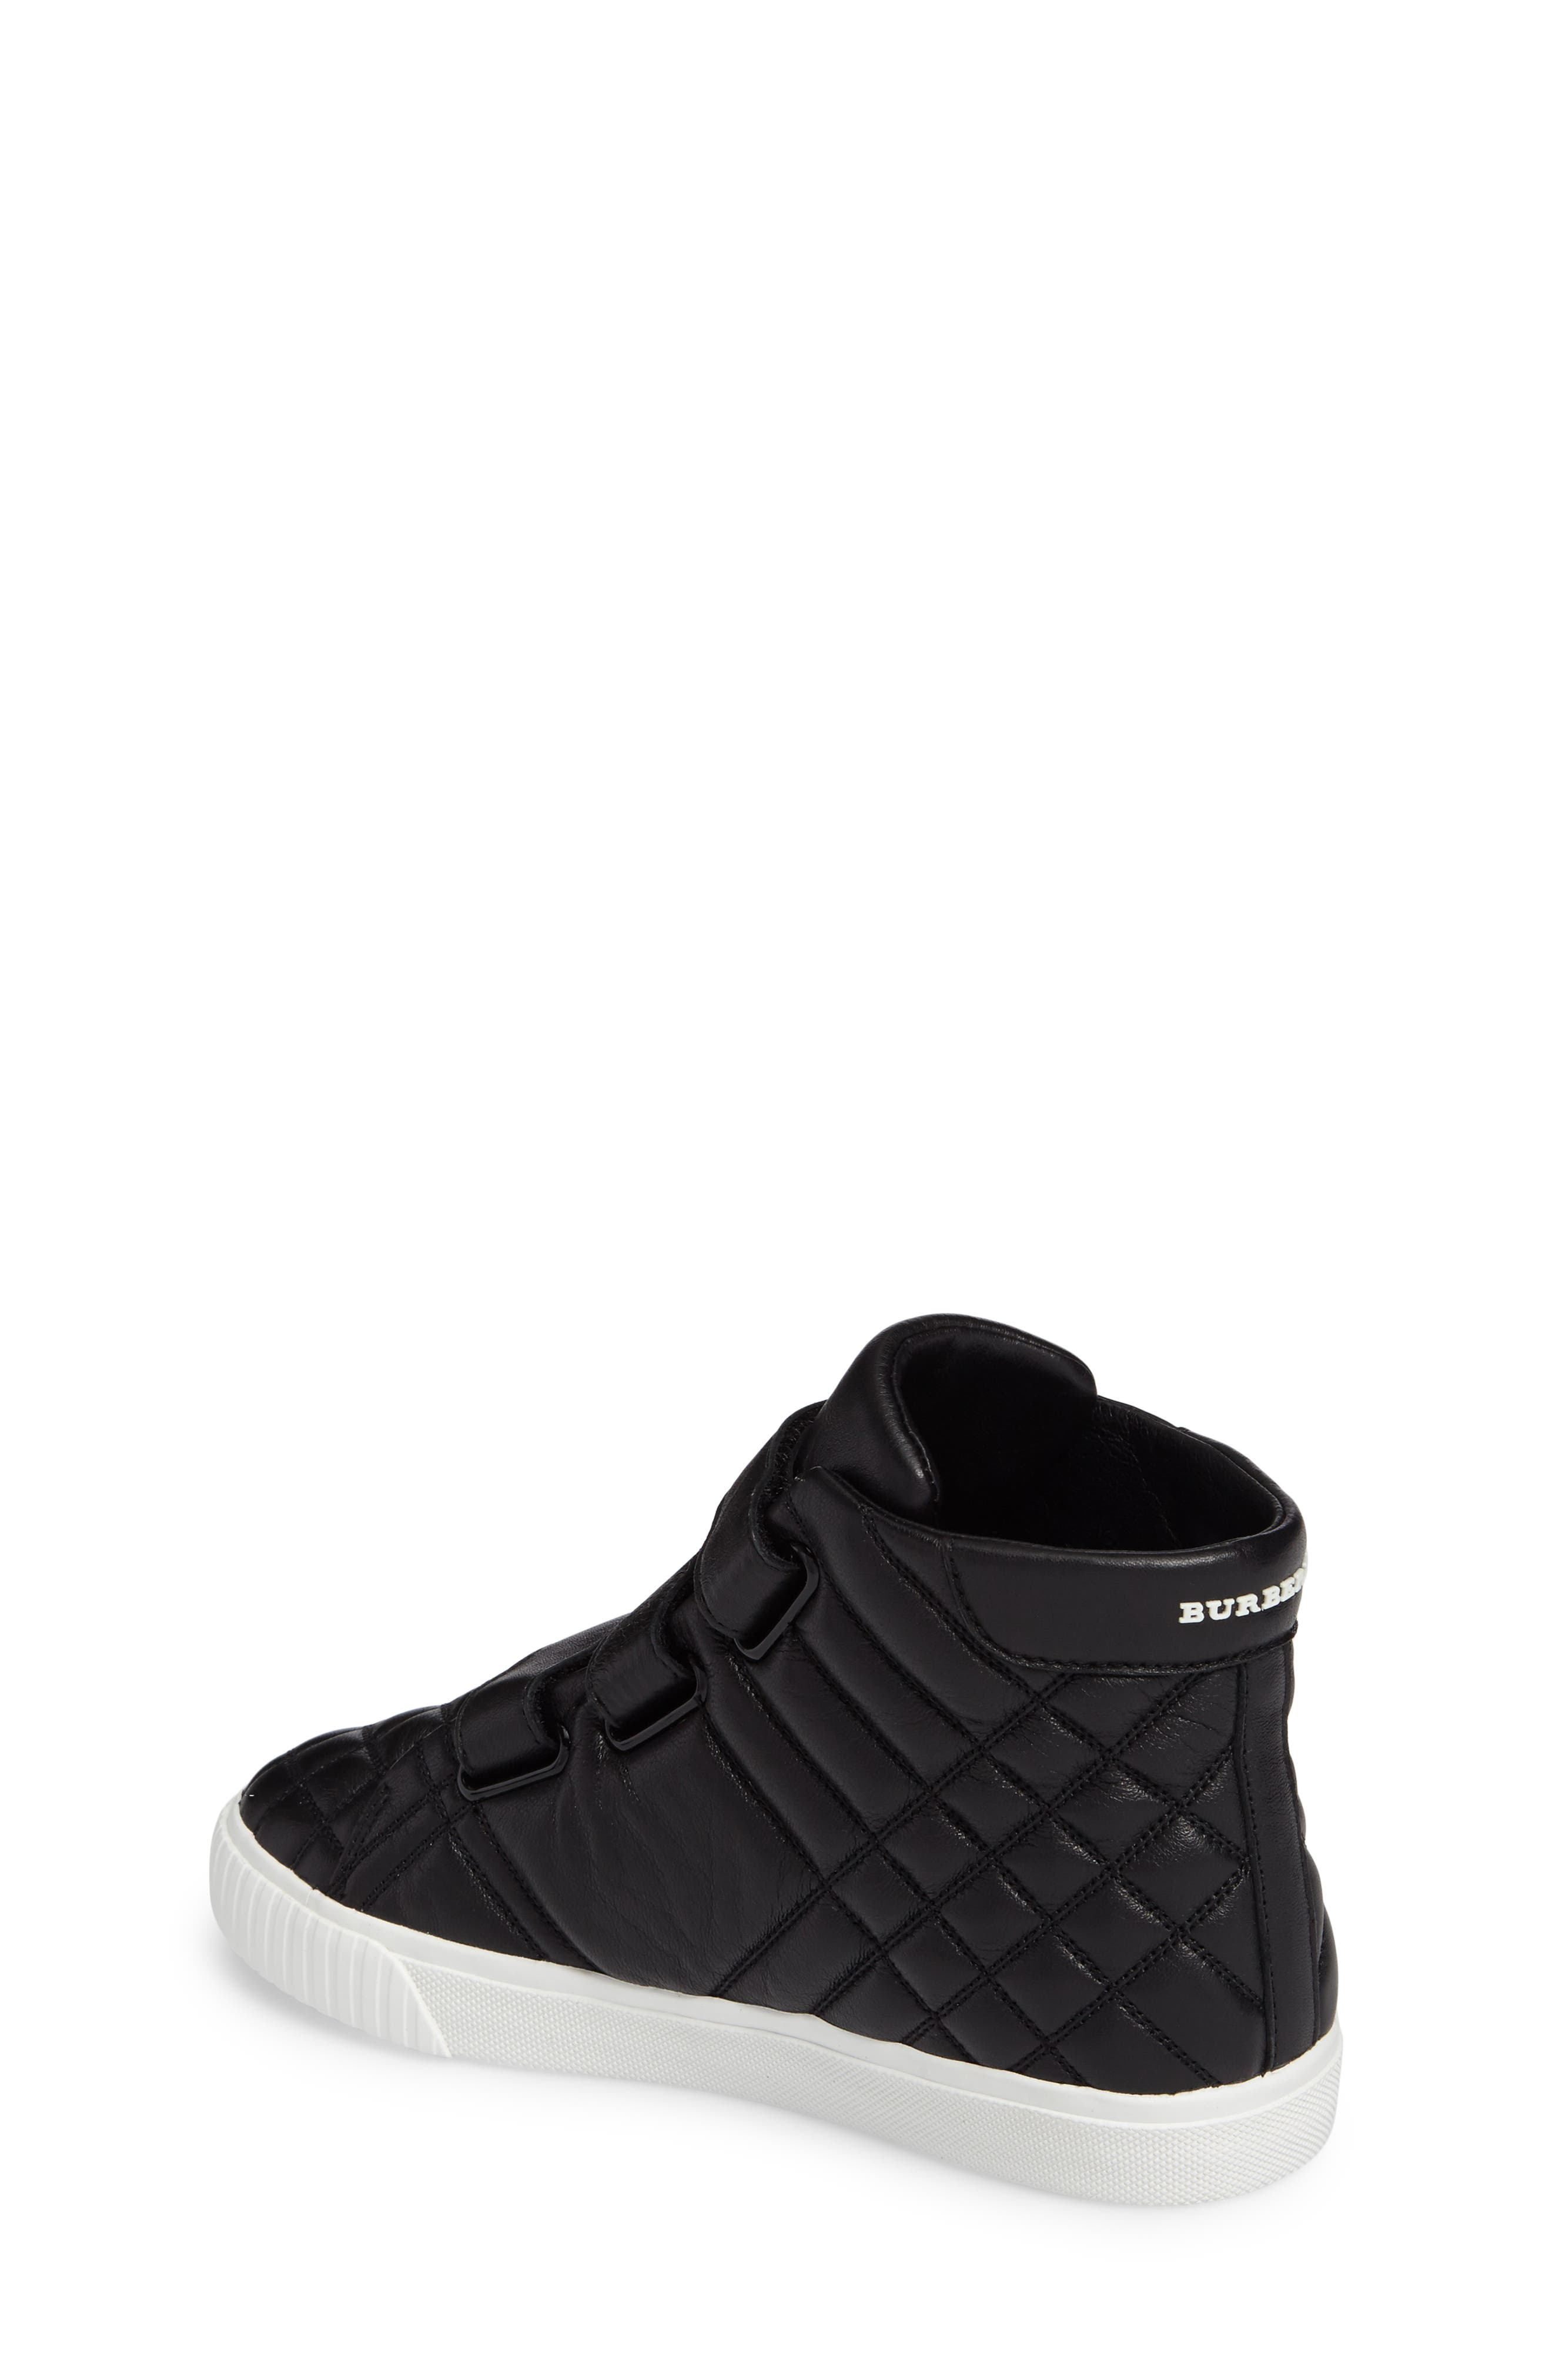 Sturrock Quilted High Top Sneaker,                             Alternate thumbnail 2, color,                             001